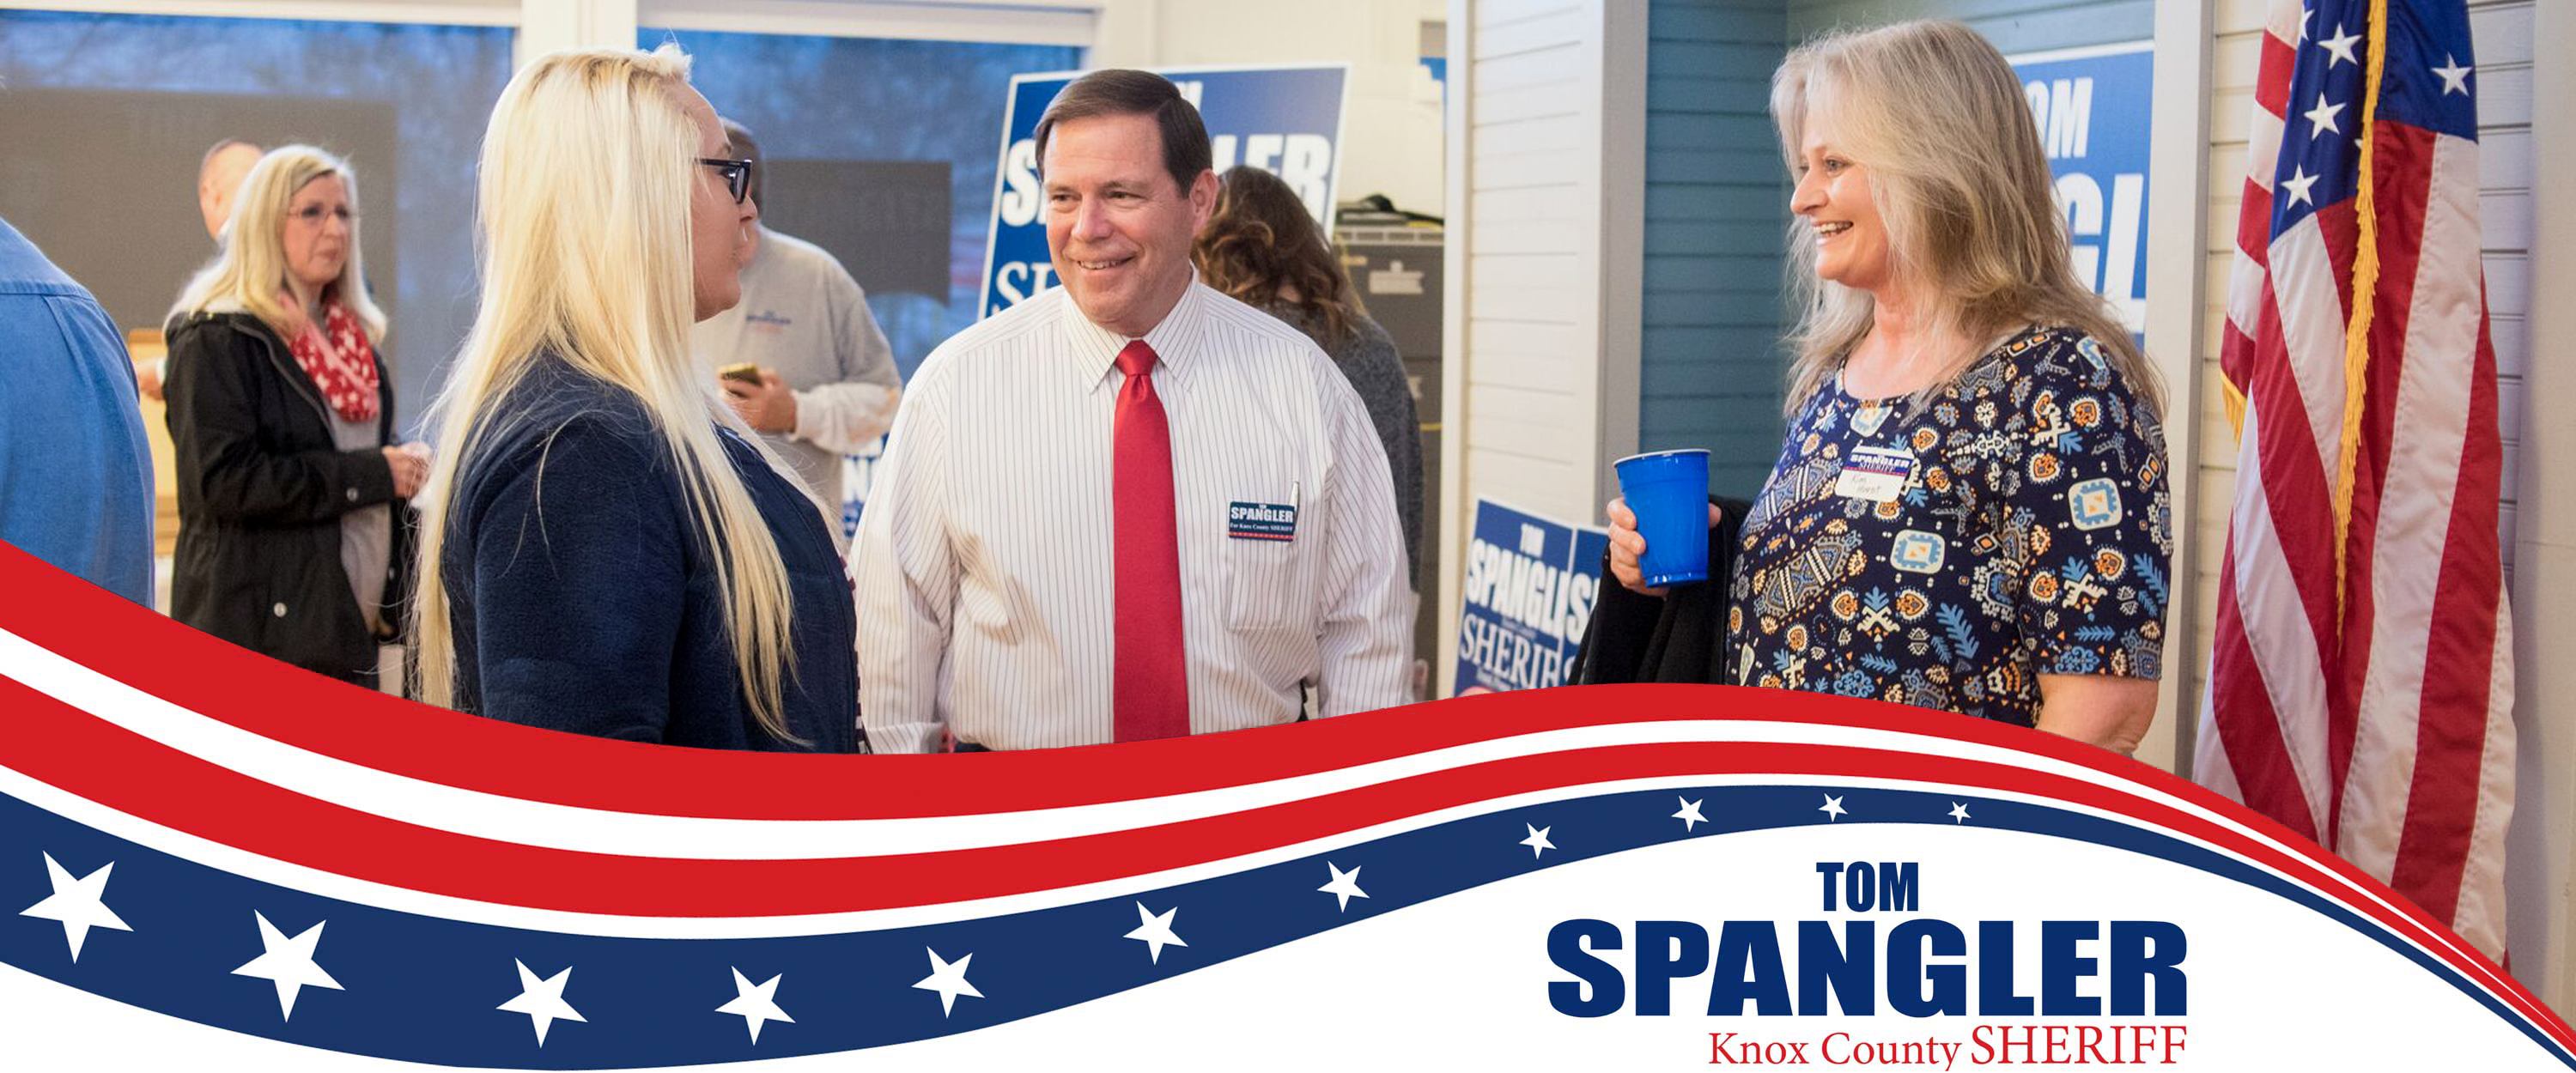 Tom Spangler Visits with Supporters at Campaign Headquarters